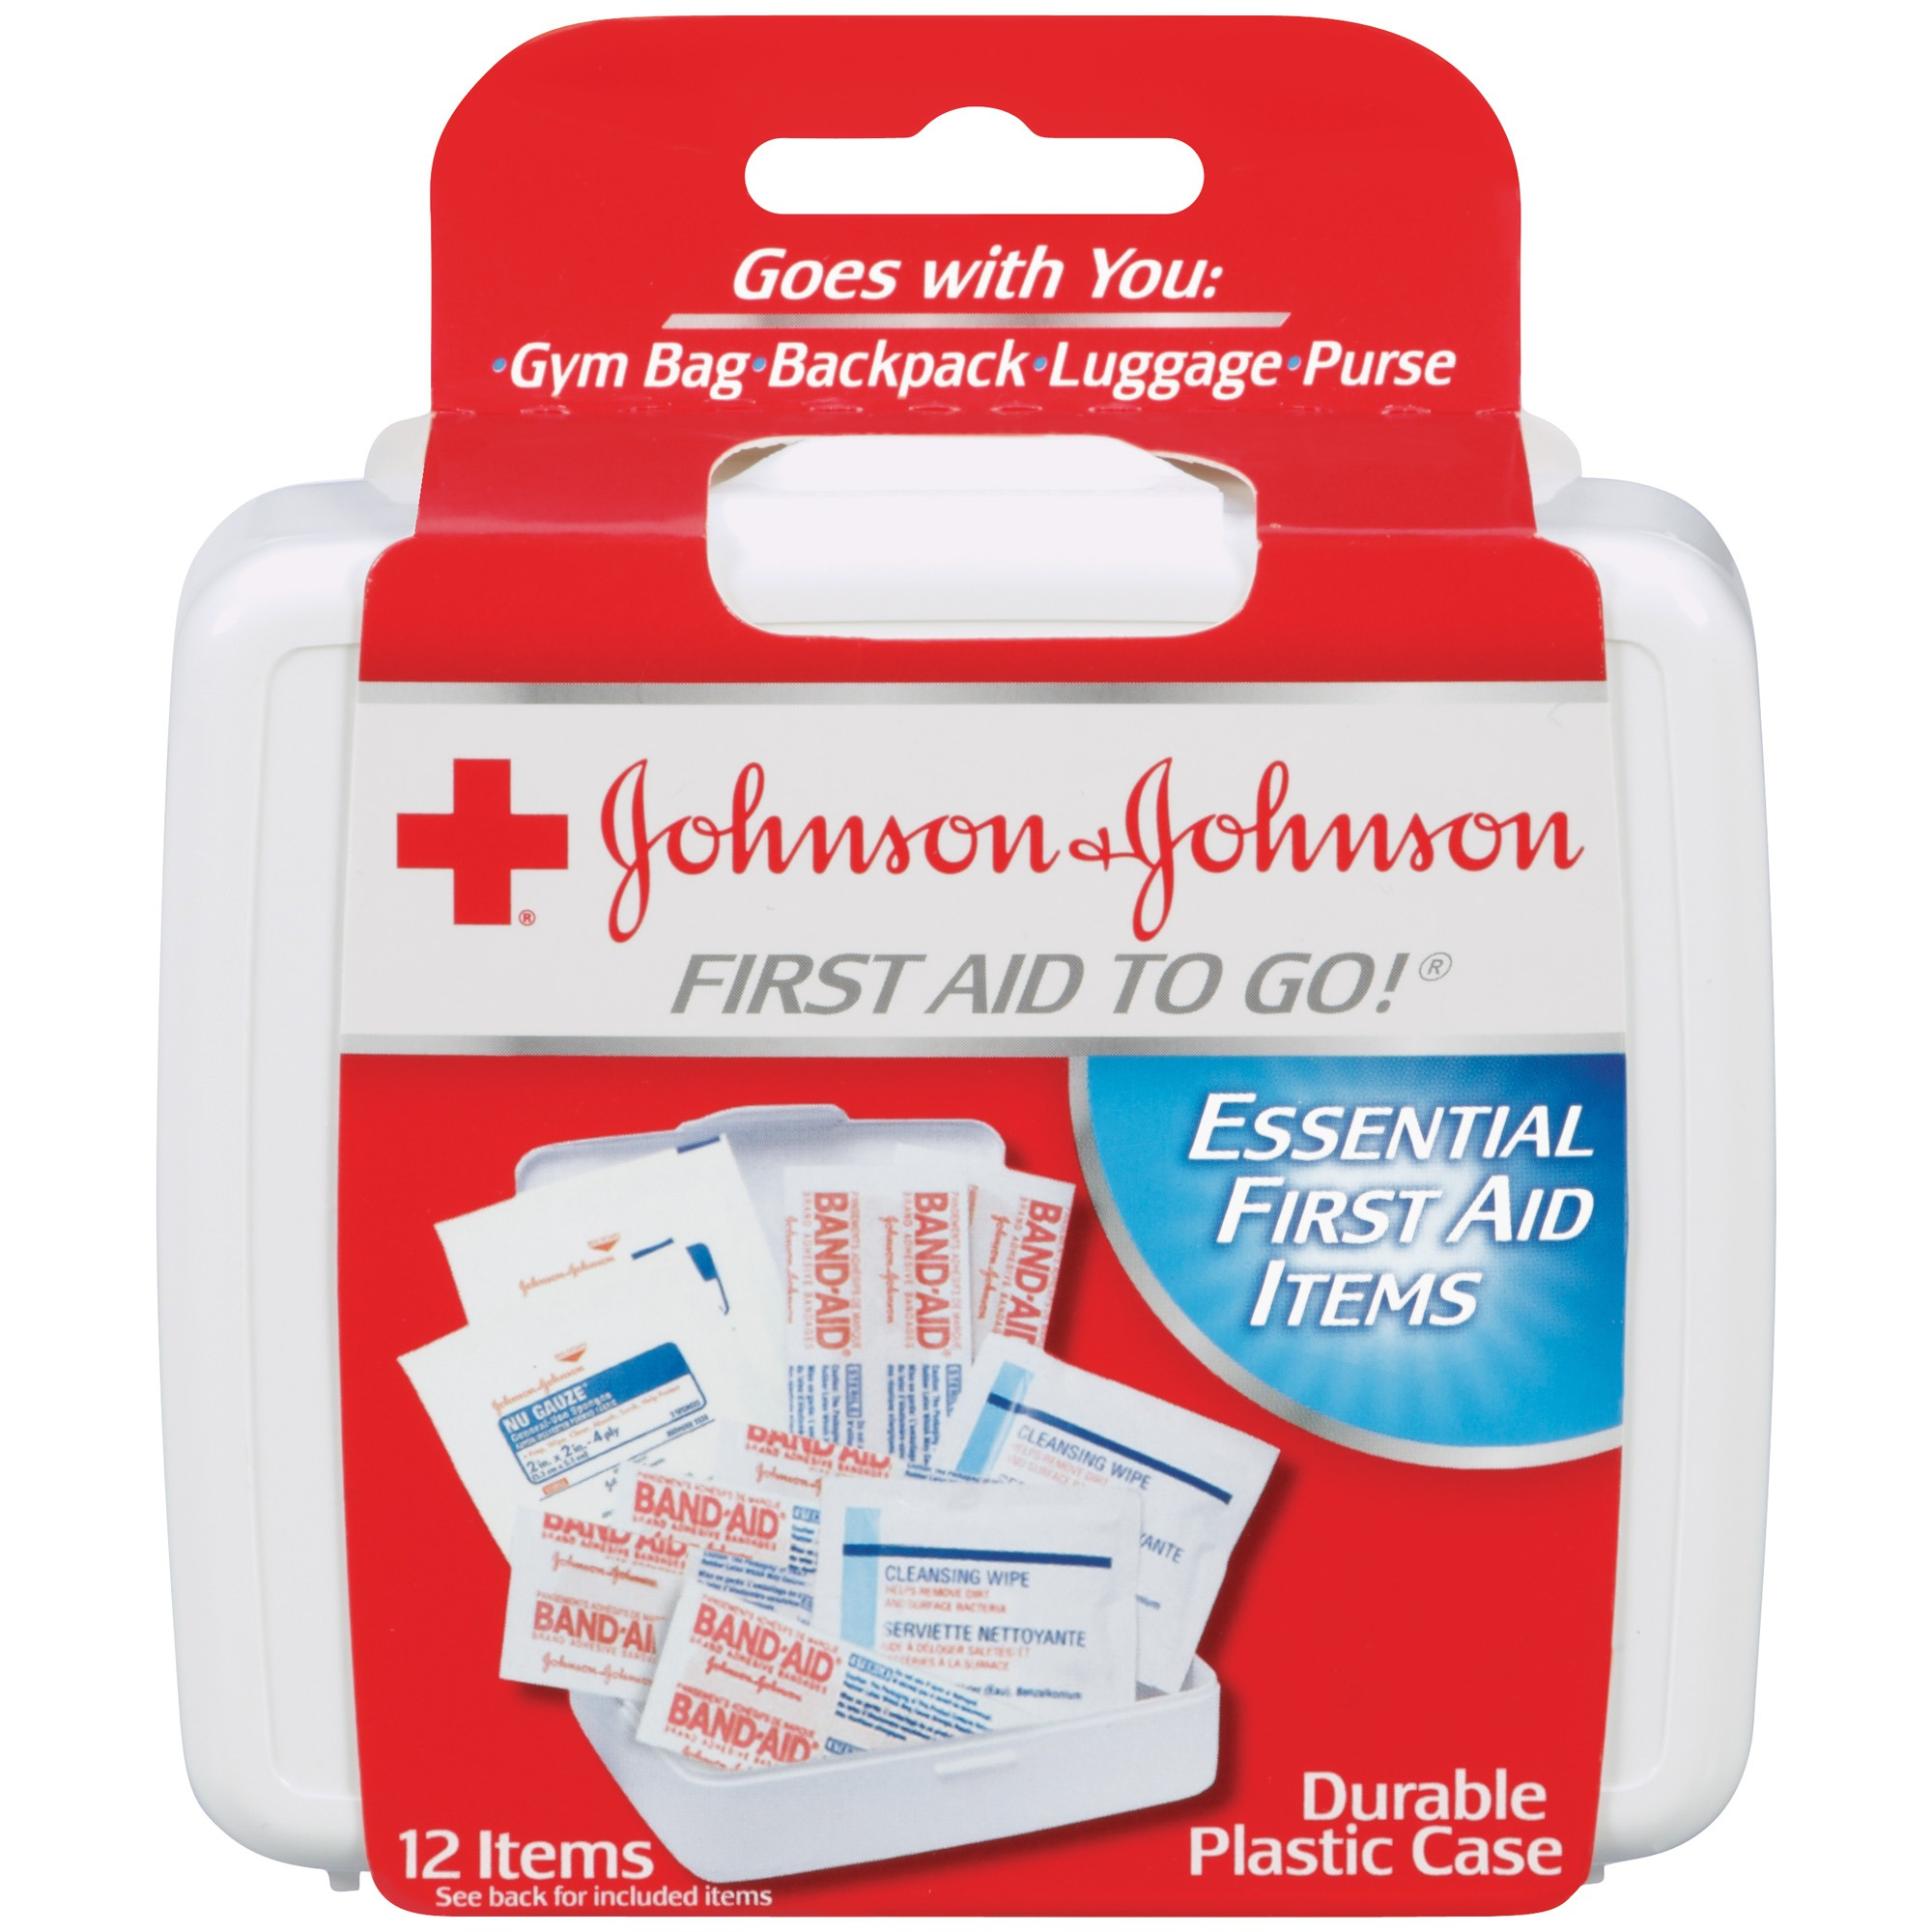 Johnson & Johnson Red Cross First Aid To Go!, First Aid Travel Kit, 12 Pieces by Johnson & Johnson